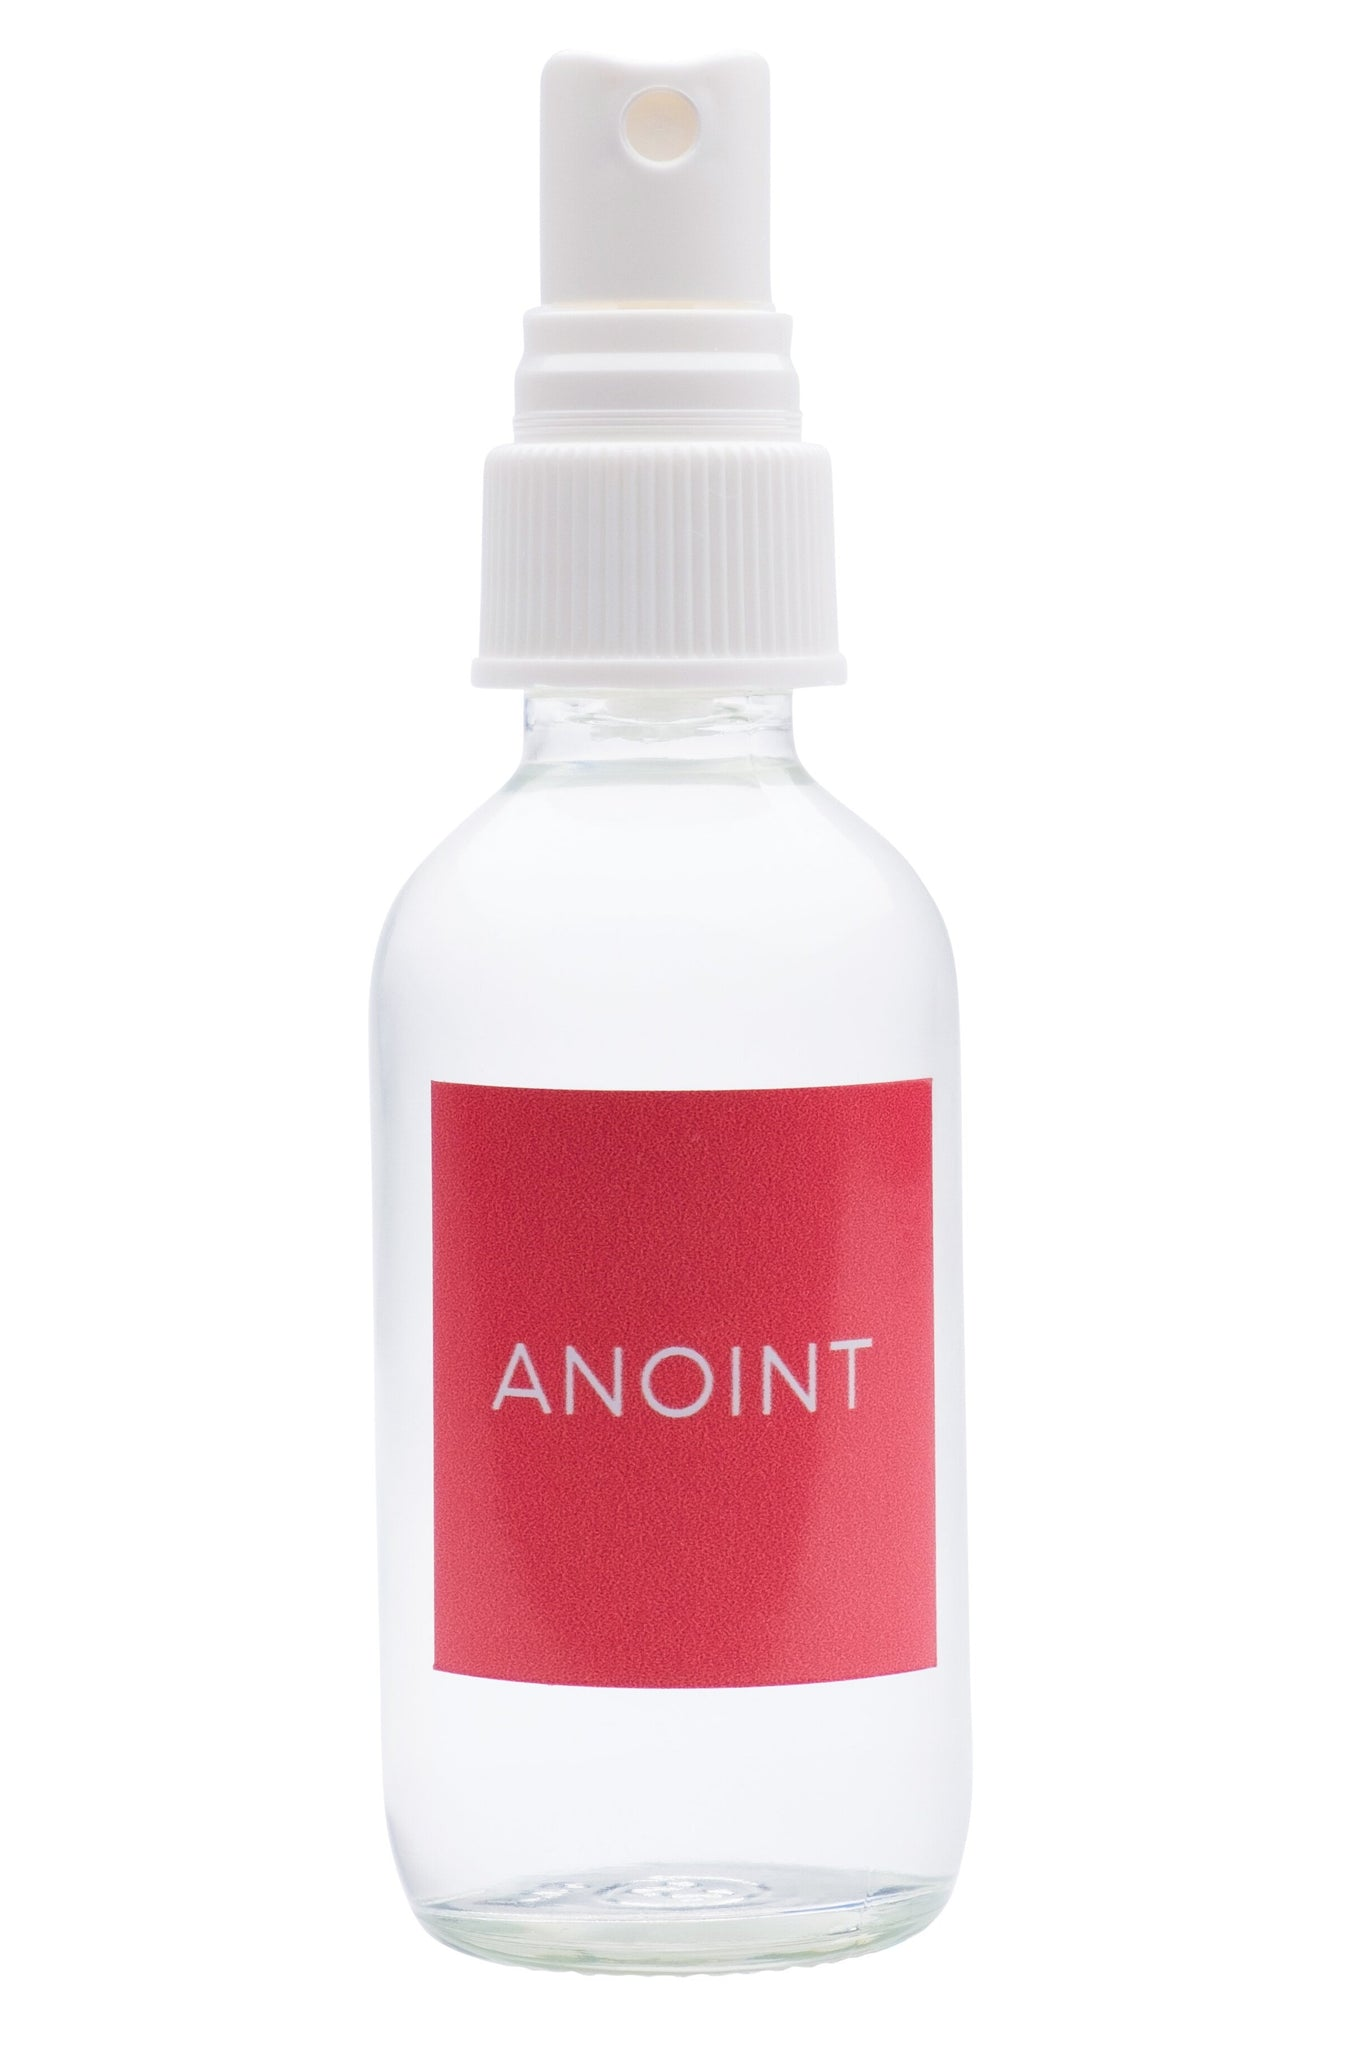 Anoint (perfume alternative)